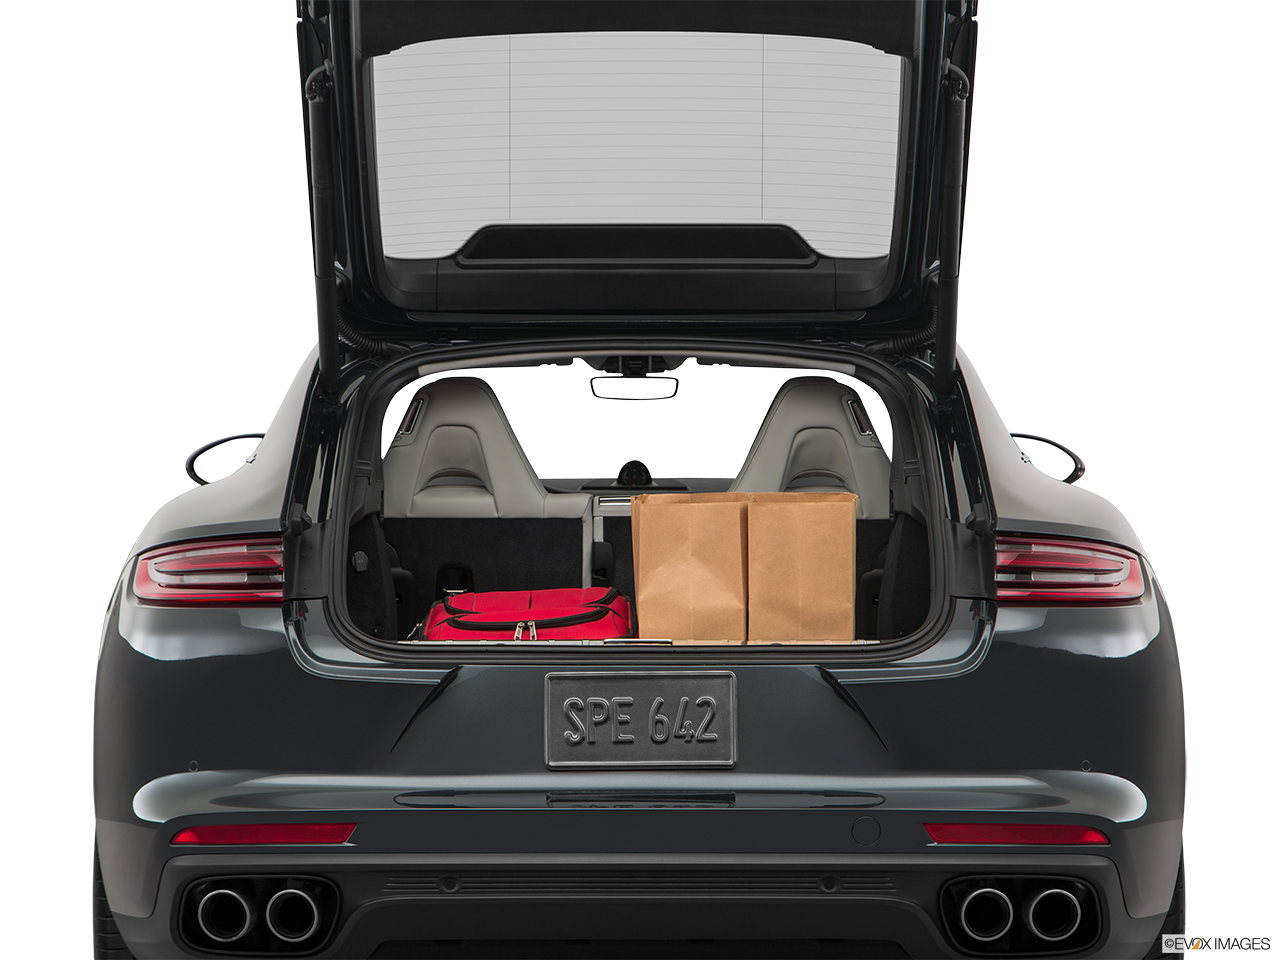 Trunk view of the Porsche Panamera Turbo S E-Hybrid